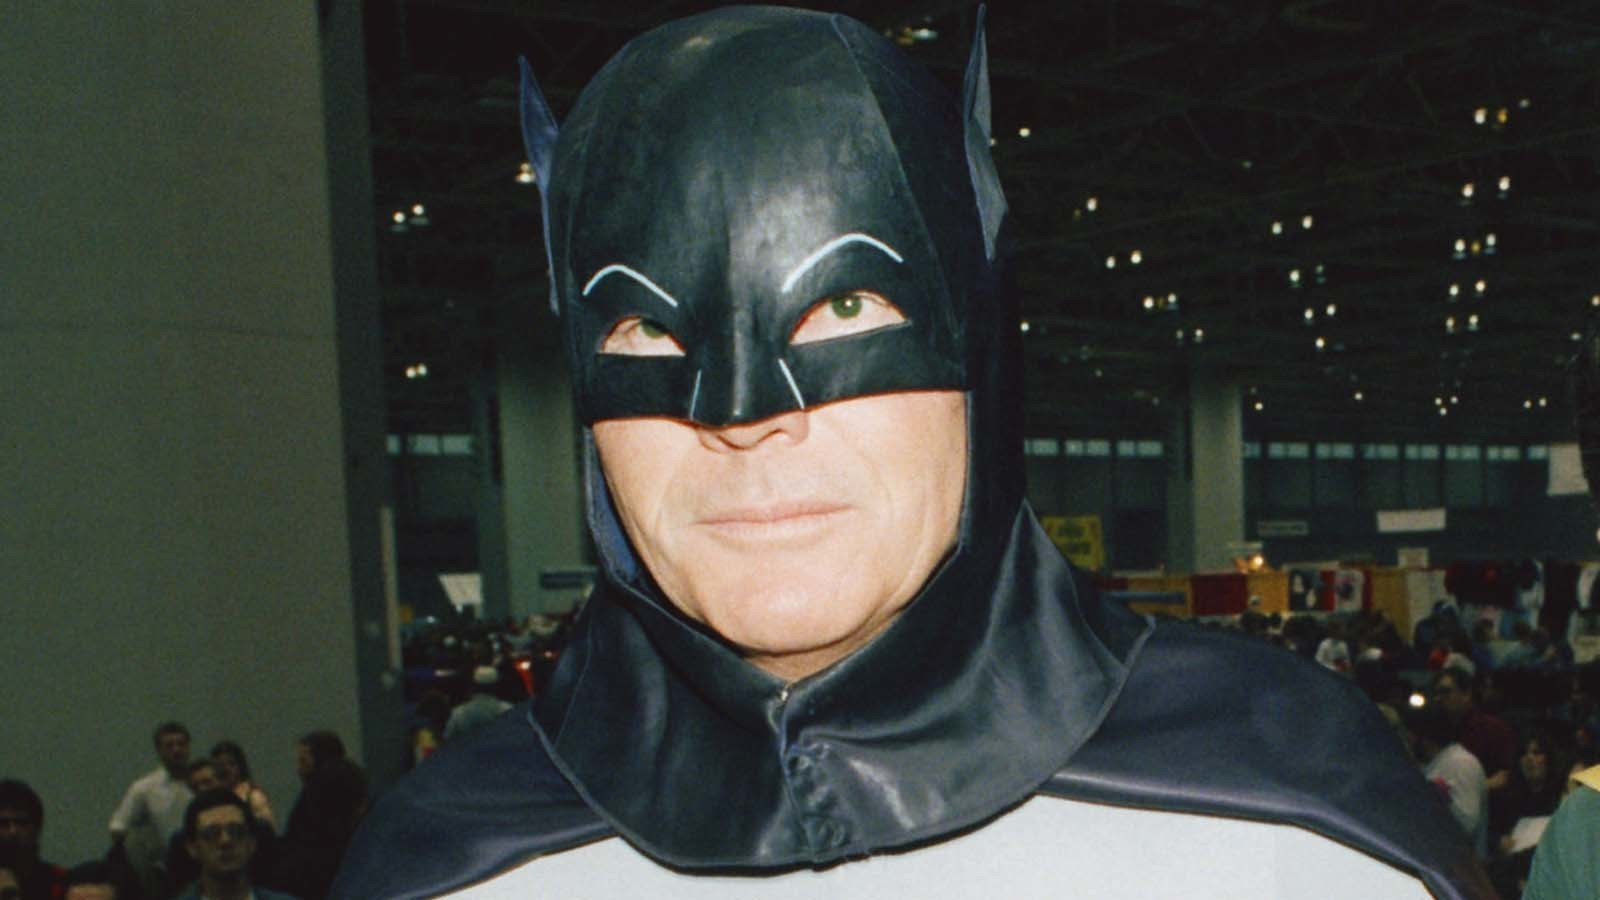 Los Angeles Will Light the Bat-Signal for Adam West Tribute